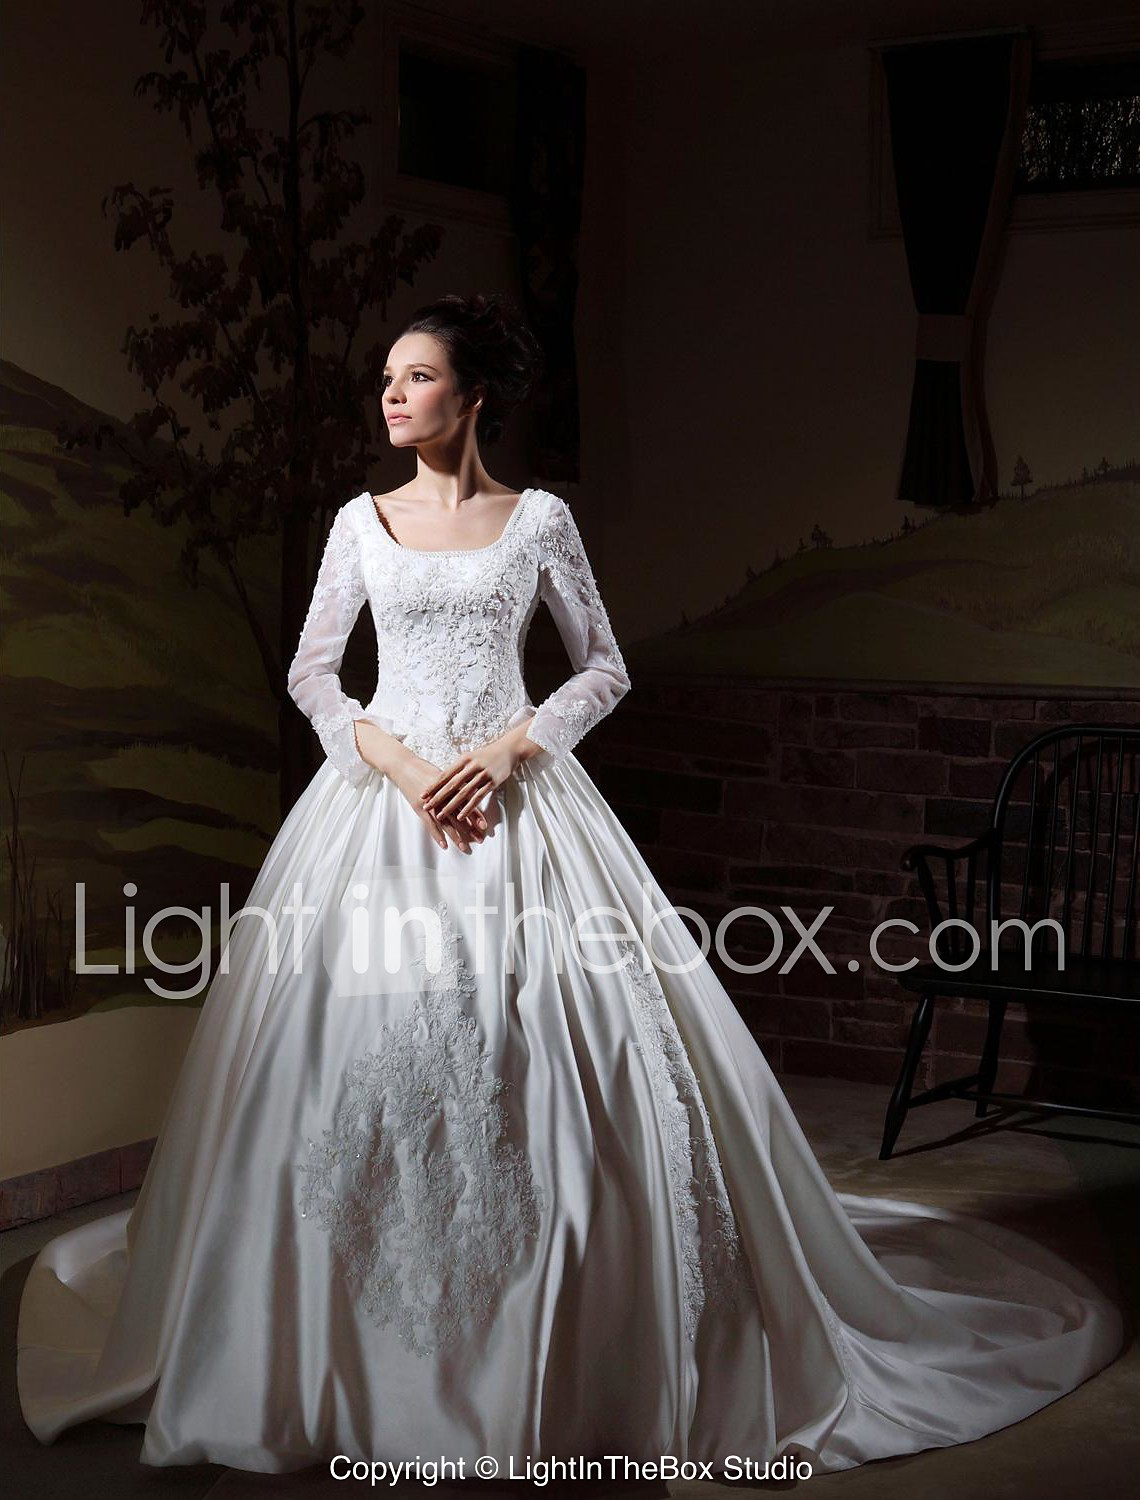 Ball Gown Long Sleeves Cathedral Train Luxury Wedding Dress With Beaded Appliques WSM p luxury wedding dresses LAN TING BRIDE Ball Gown Wedding Dress Classic Timeless Elegant Luxurious Vintage Inspired Cathedral Train Square Satin with 99